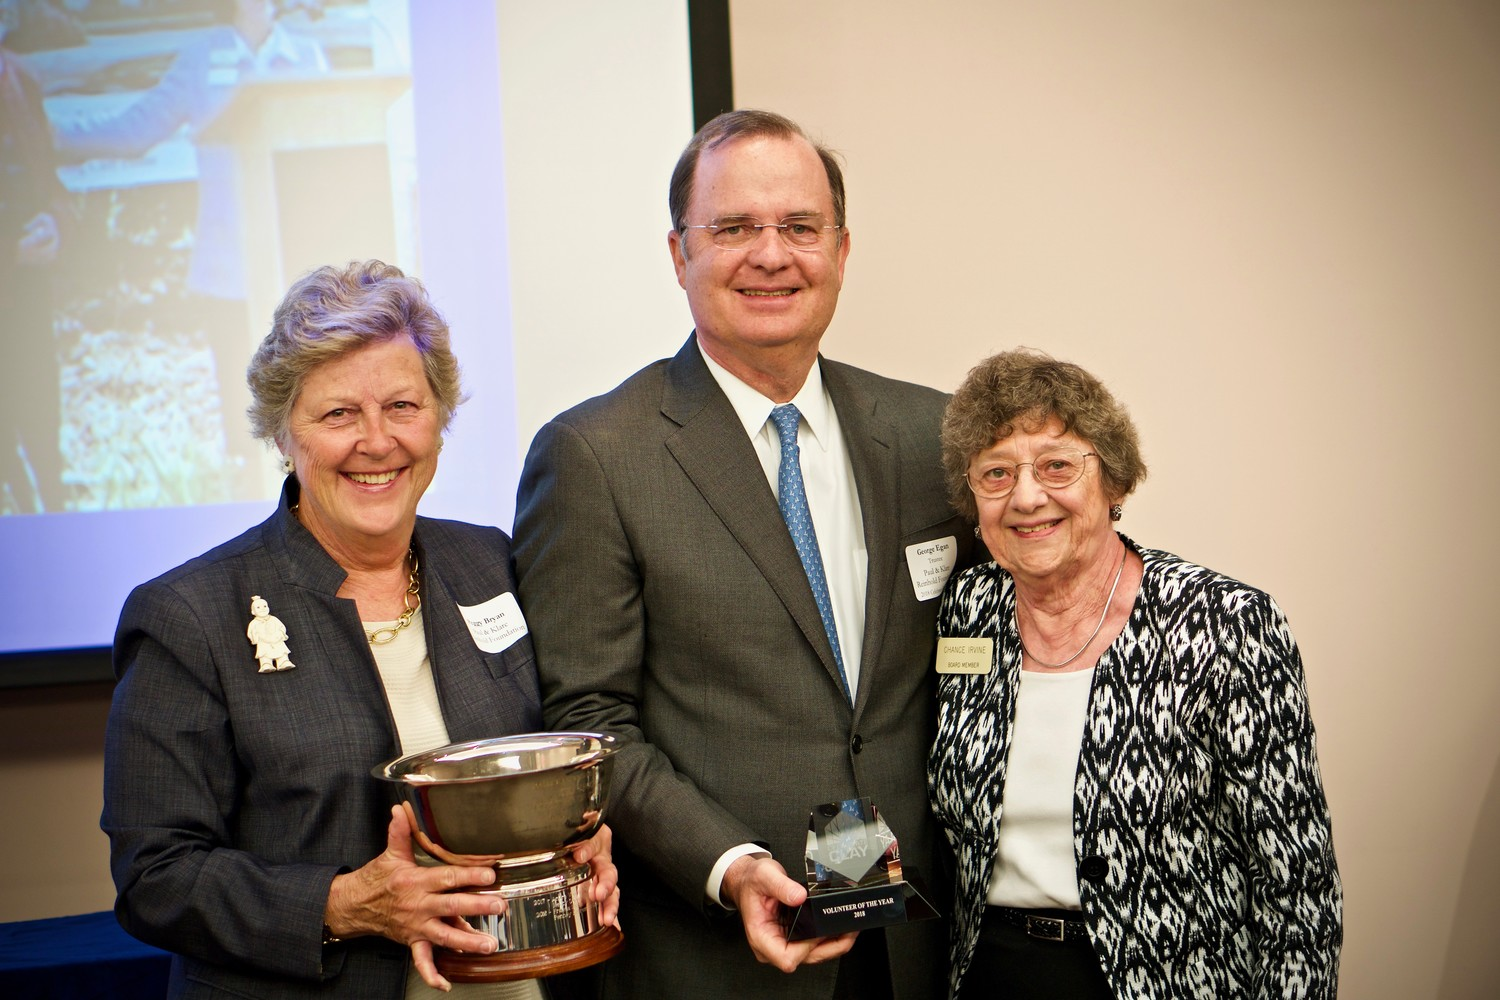 Paul and Klare Reinhold Foundation family members, far left, Peggy Bryan, and George Egan, stand with Penney Retirement Community board member Chance Irvine, who is also a former member of the Florida House of Representatives, holding the Volunteer of the Year Award at the 2018 Celebrate Clay Awards.